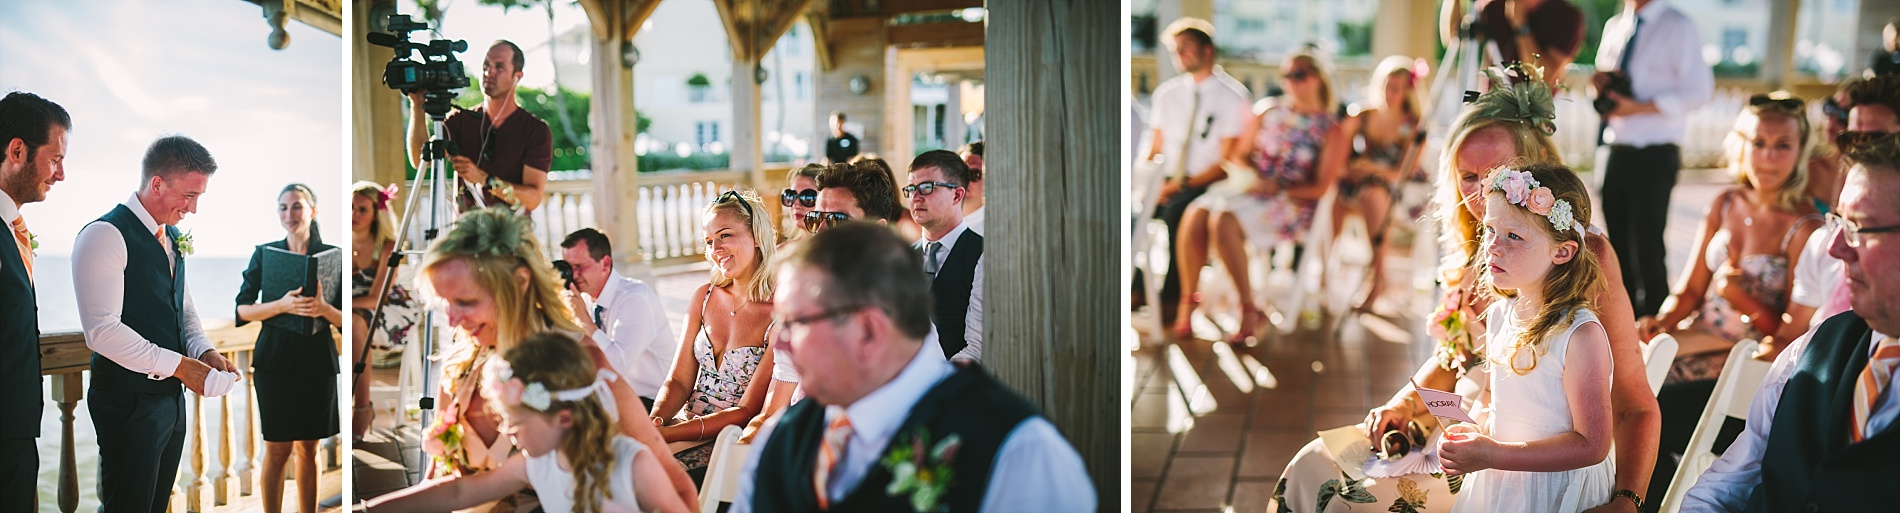 key west wedding photography 037